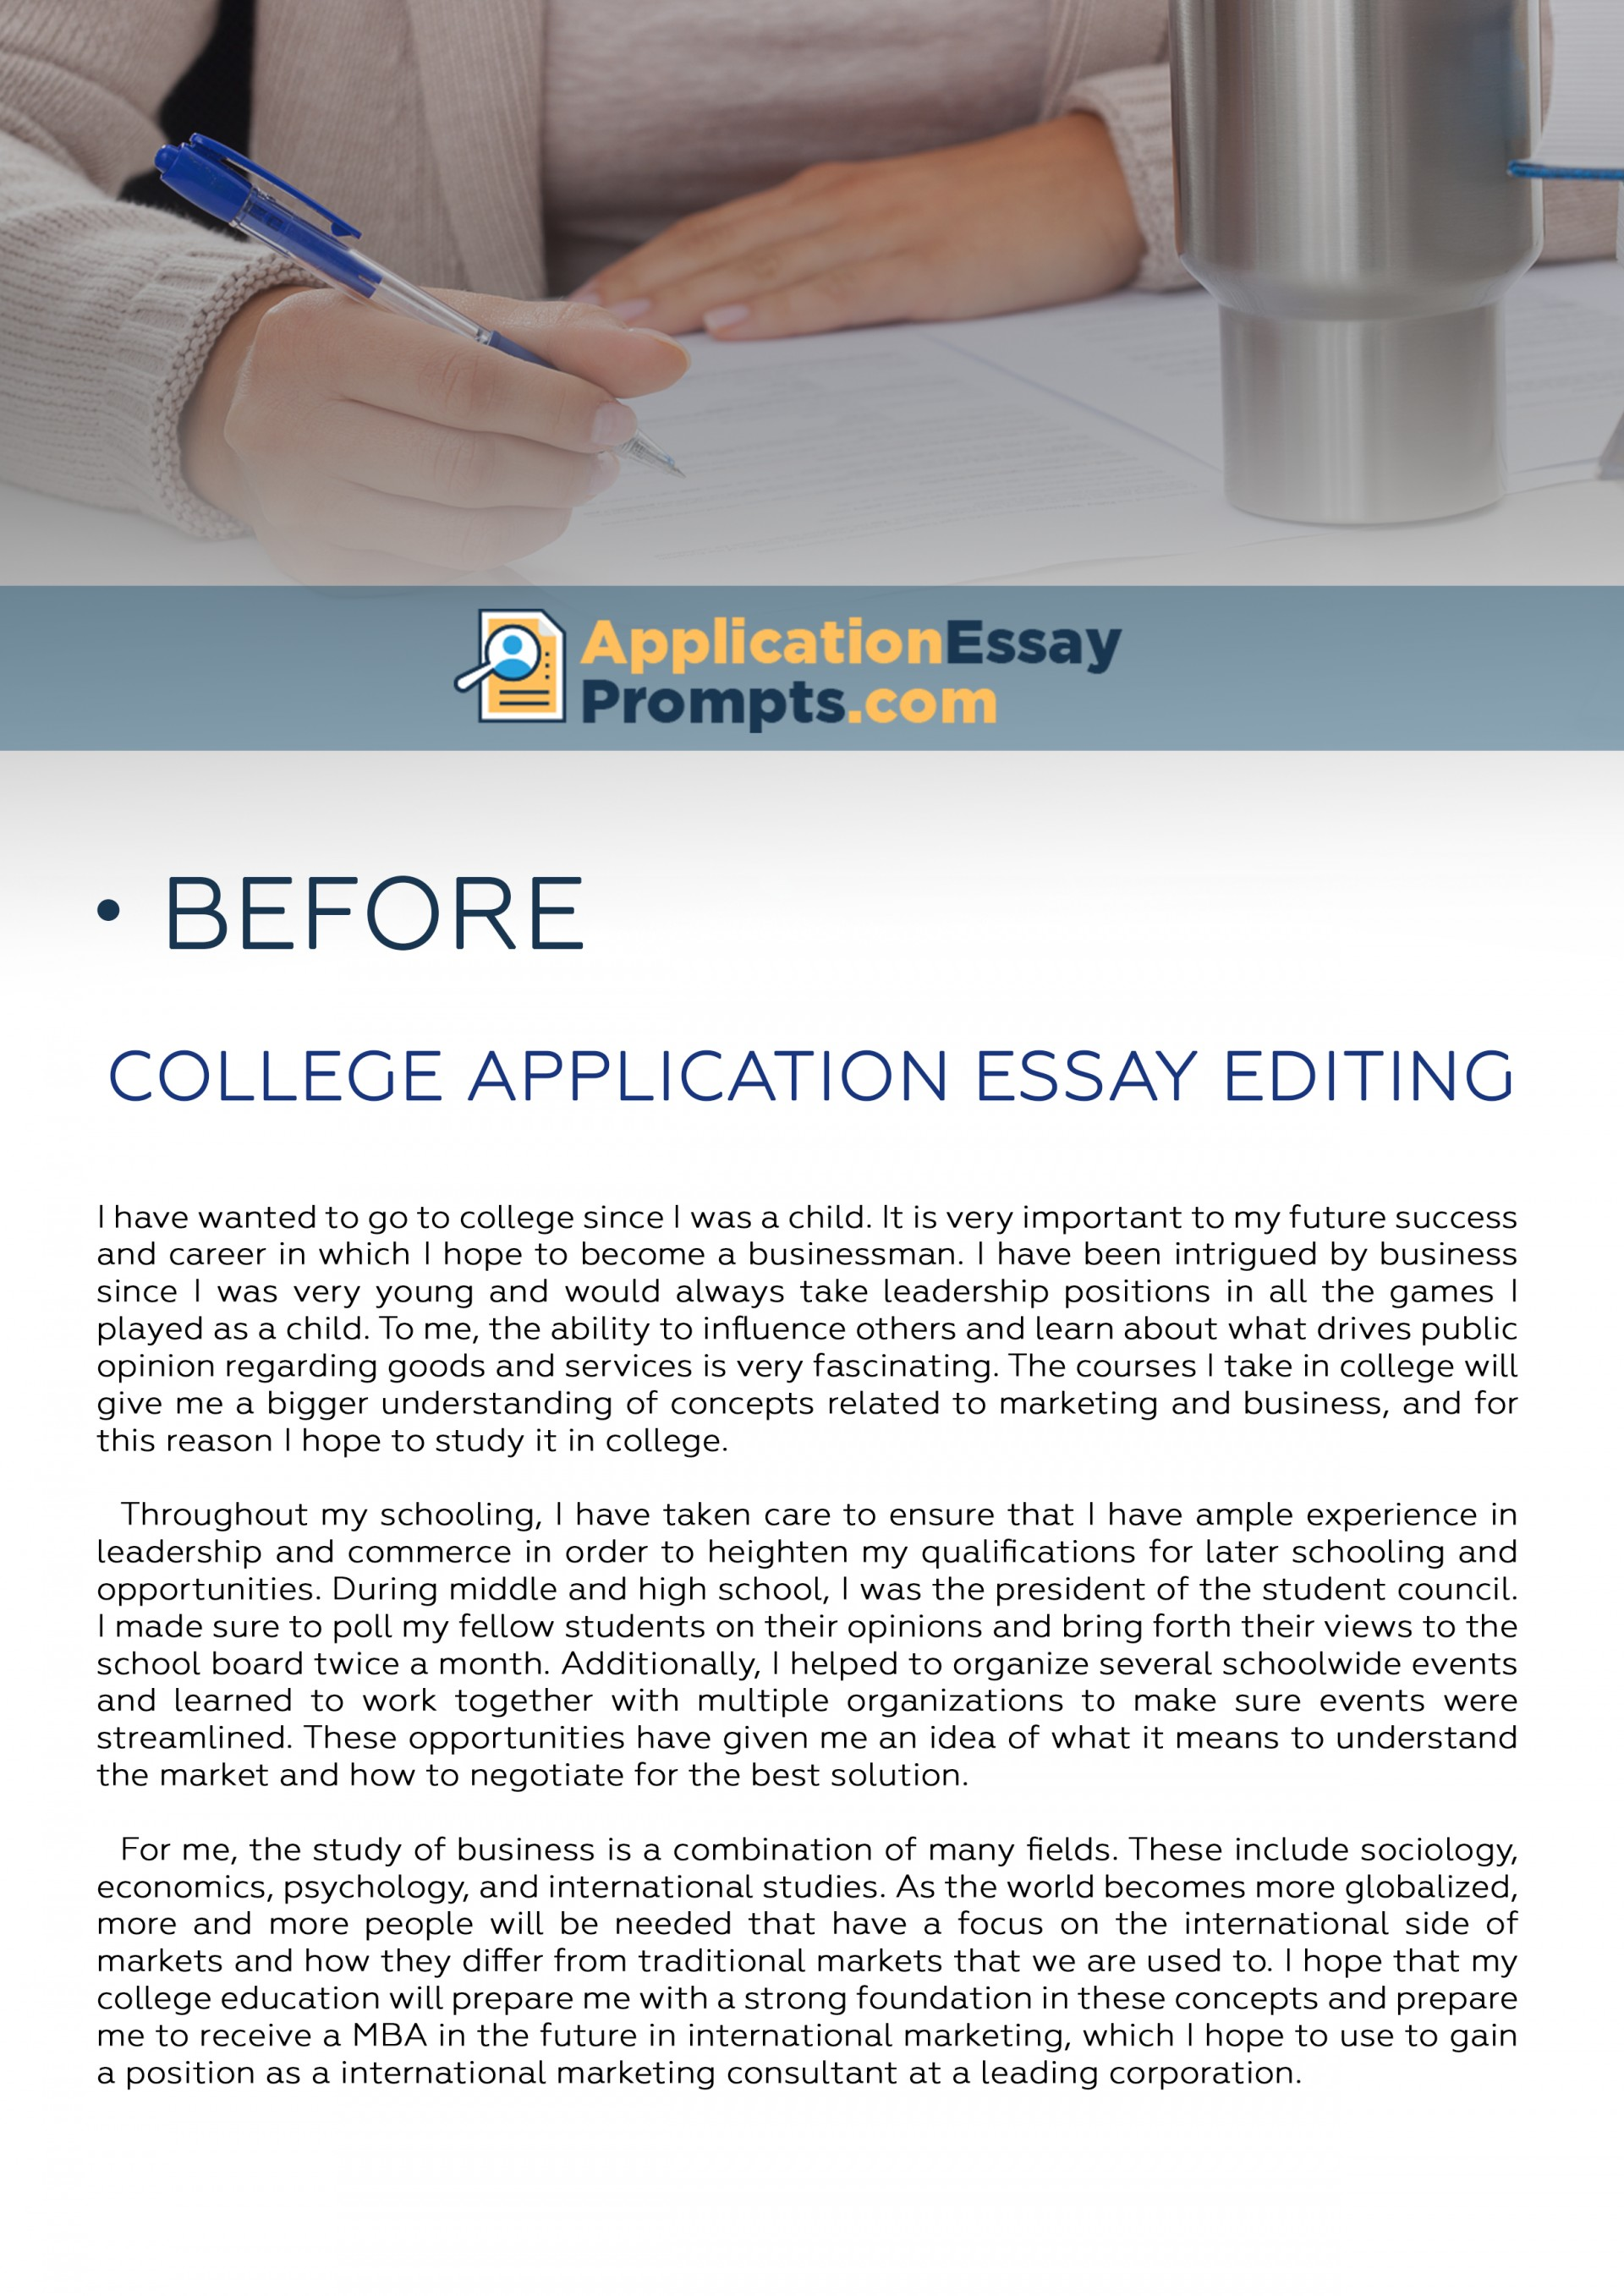 019 College Essay Editing Before Amazing Services Online Jobs Checklist 1920